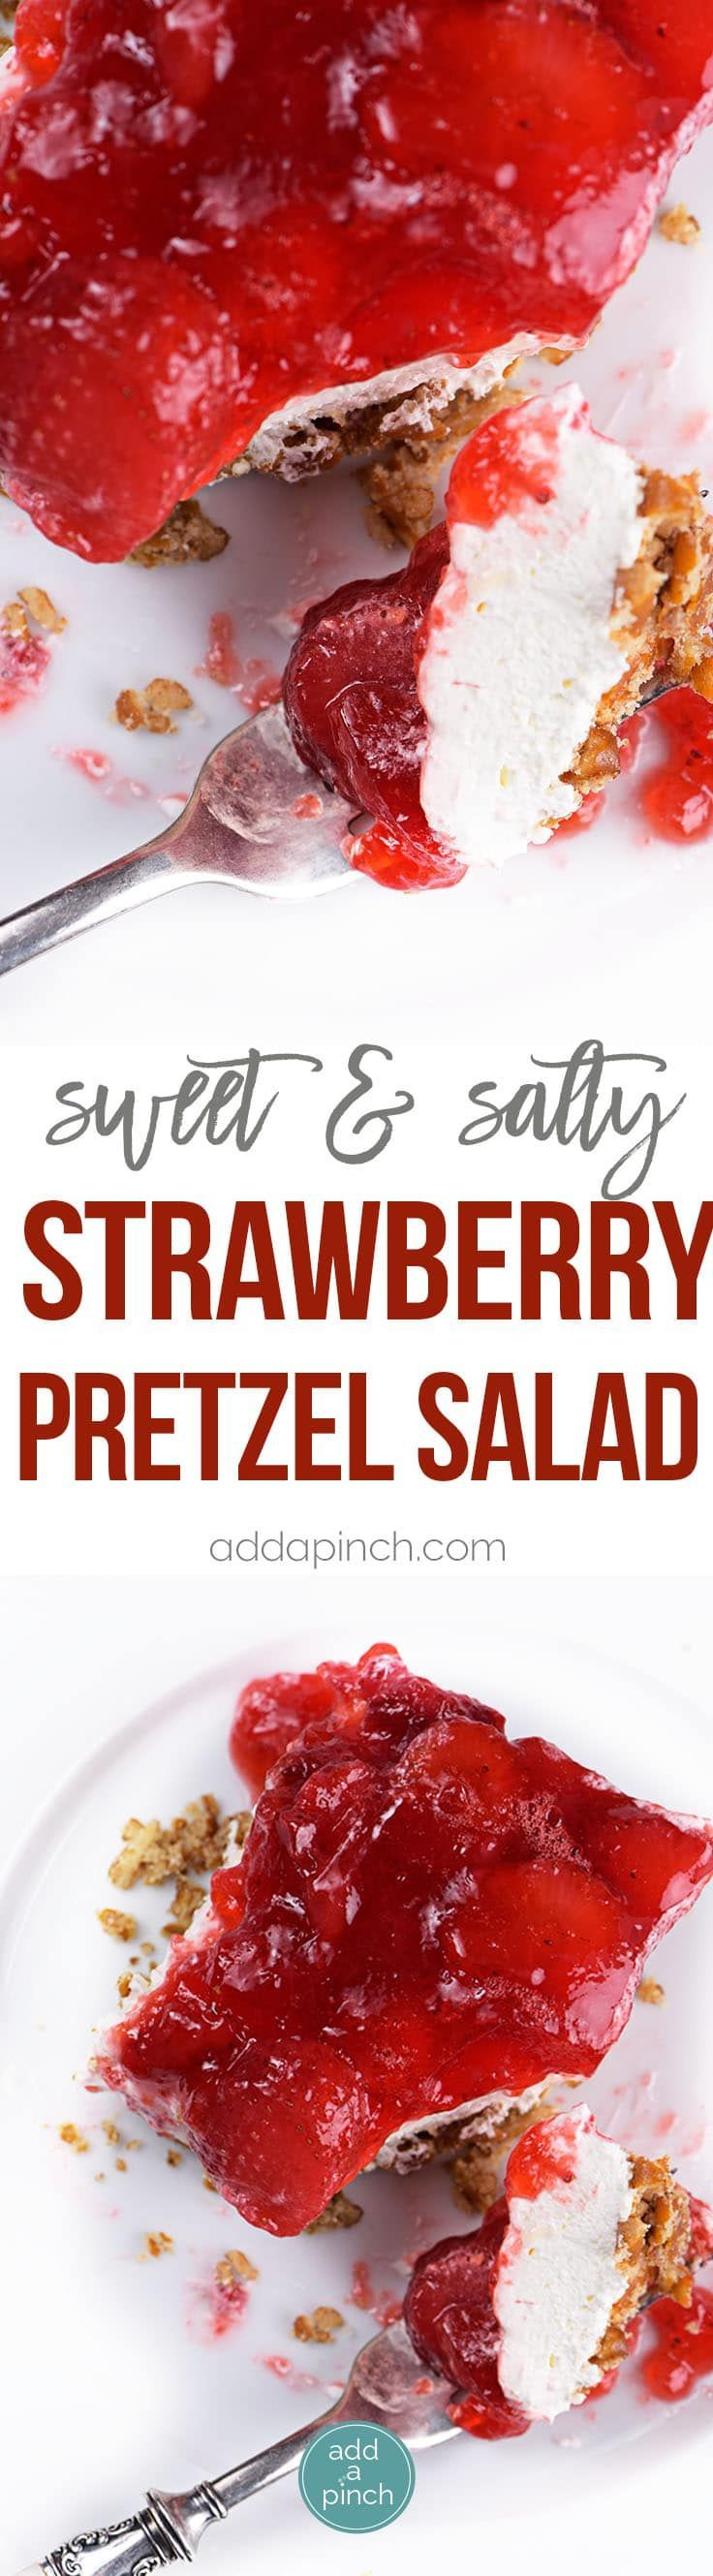 ***Strawberry Pretzel Salad Recipe ~ makes a classic, nostalgic recipe. A creamy, fruity recipe made with strawberry gelatin, cream cheese, whipped topping, and pretzels. It is always a favorite.